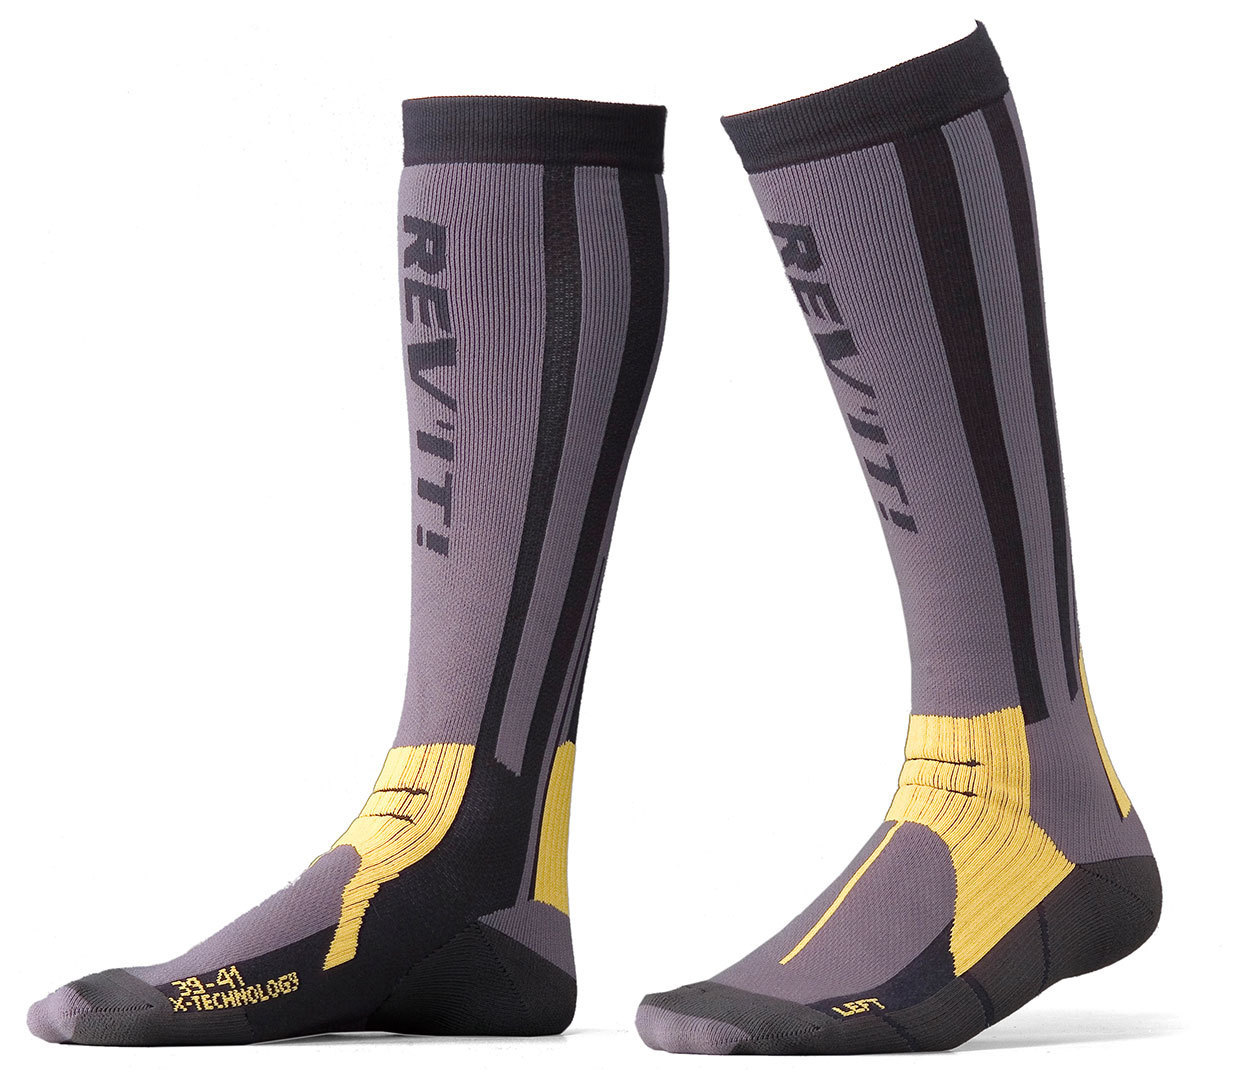 Revit Tour Sommer Socken FAR018 - 3540-35-38